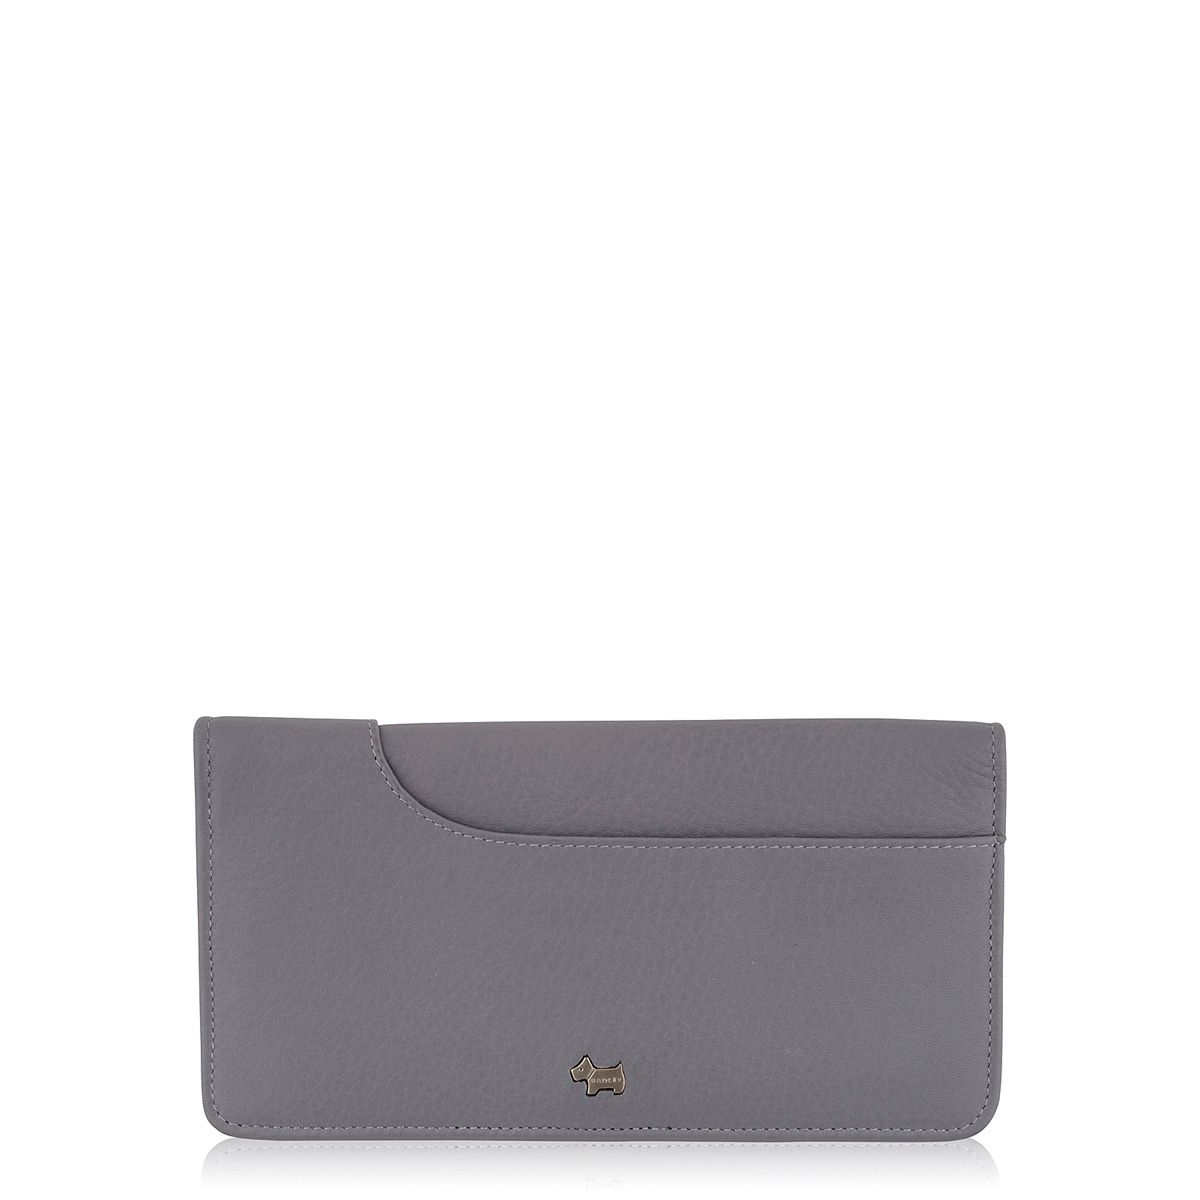 Purple large flapover purse